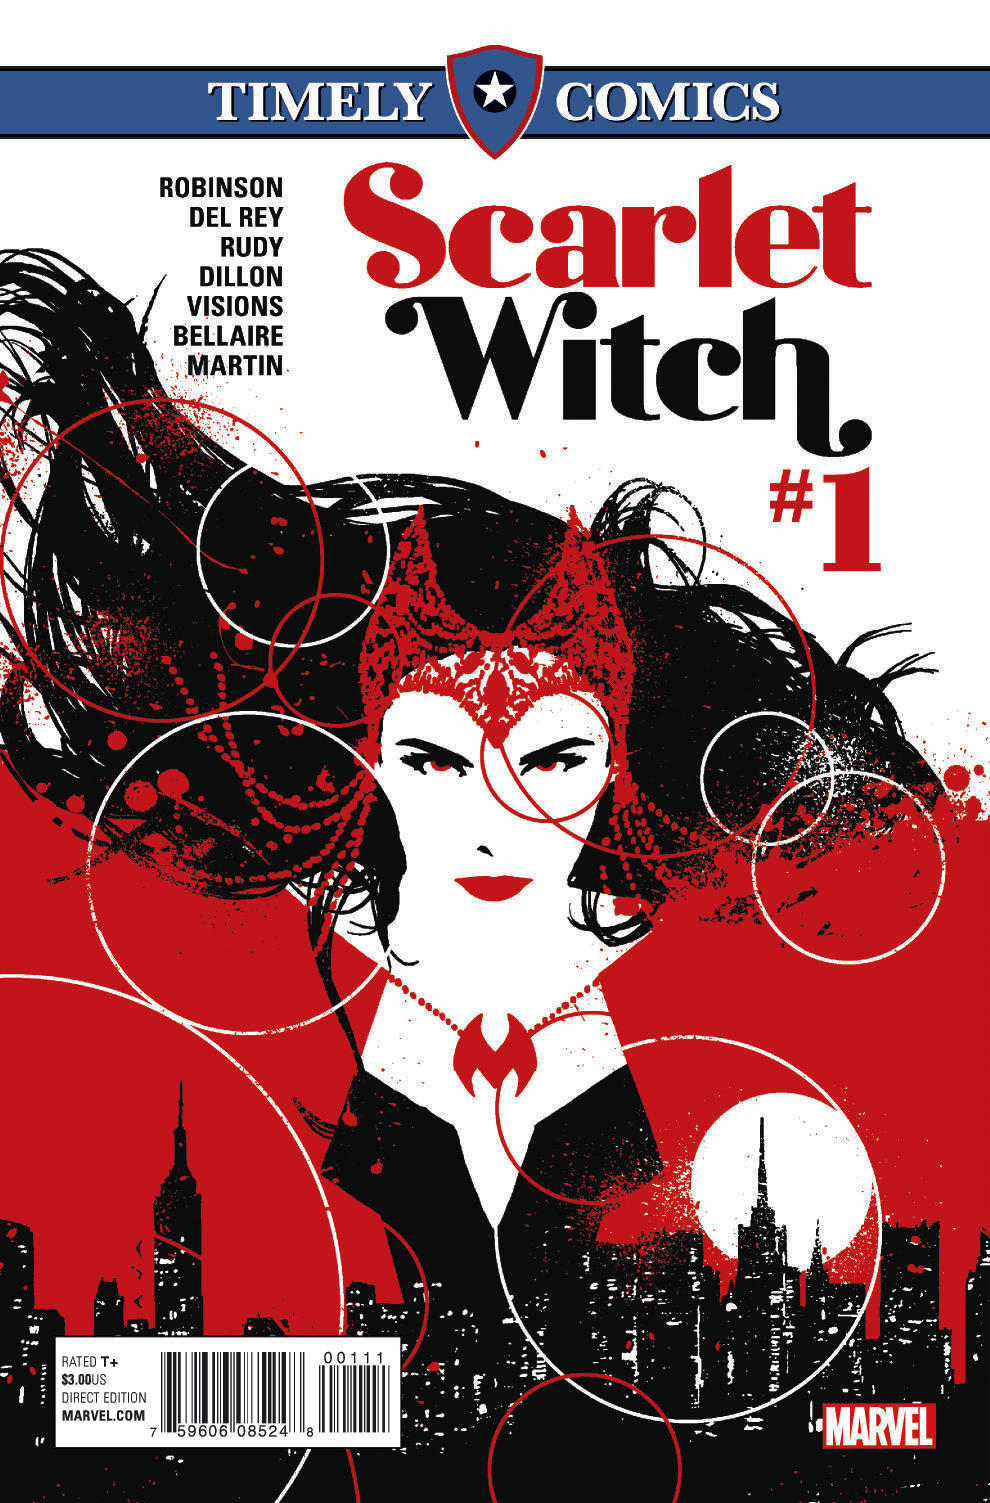 Timely Comics: Scarlet Witch Vol 1